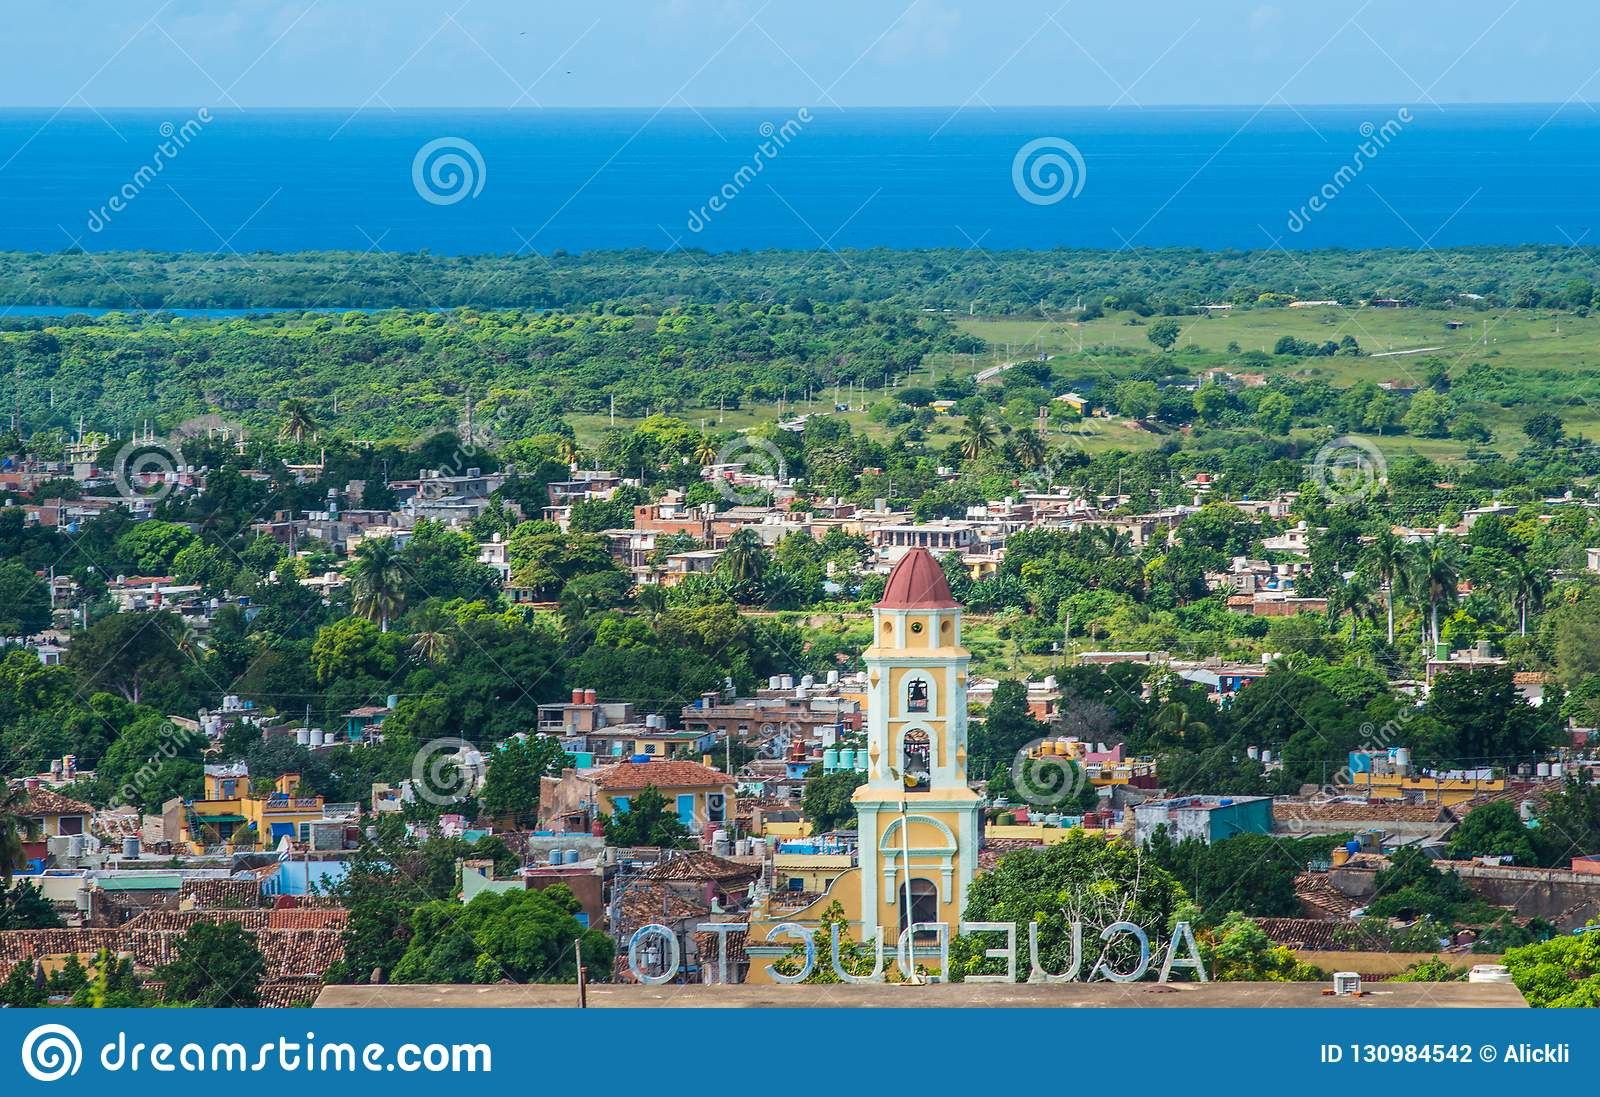 Colorful Colonial Caribbean city overlook with classic building and church, Trinidad, Cuba, America.